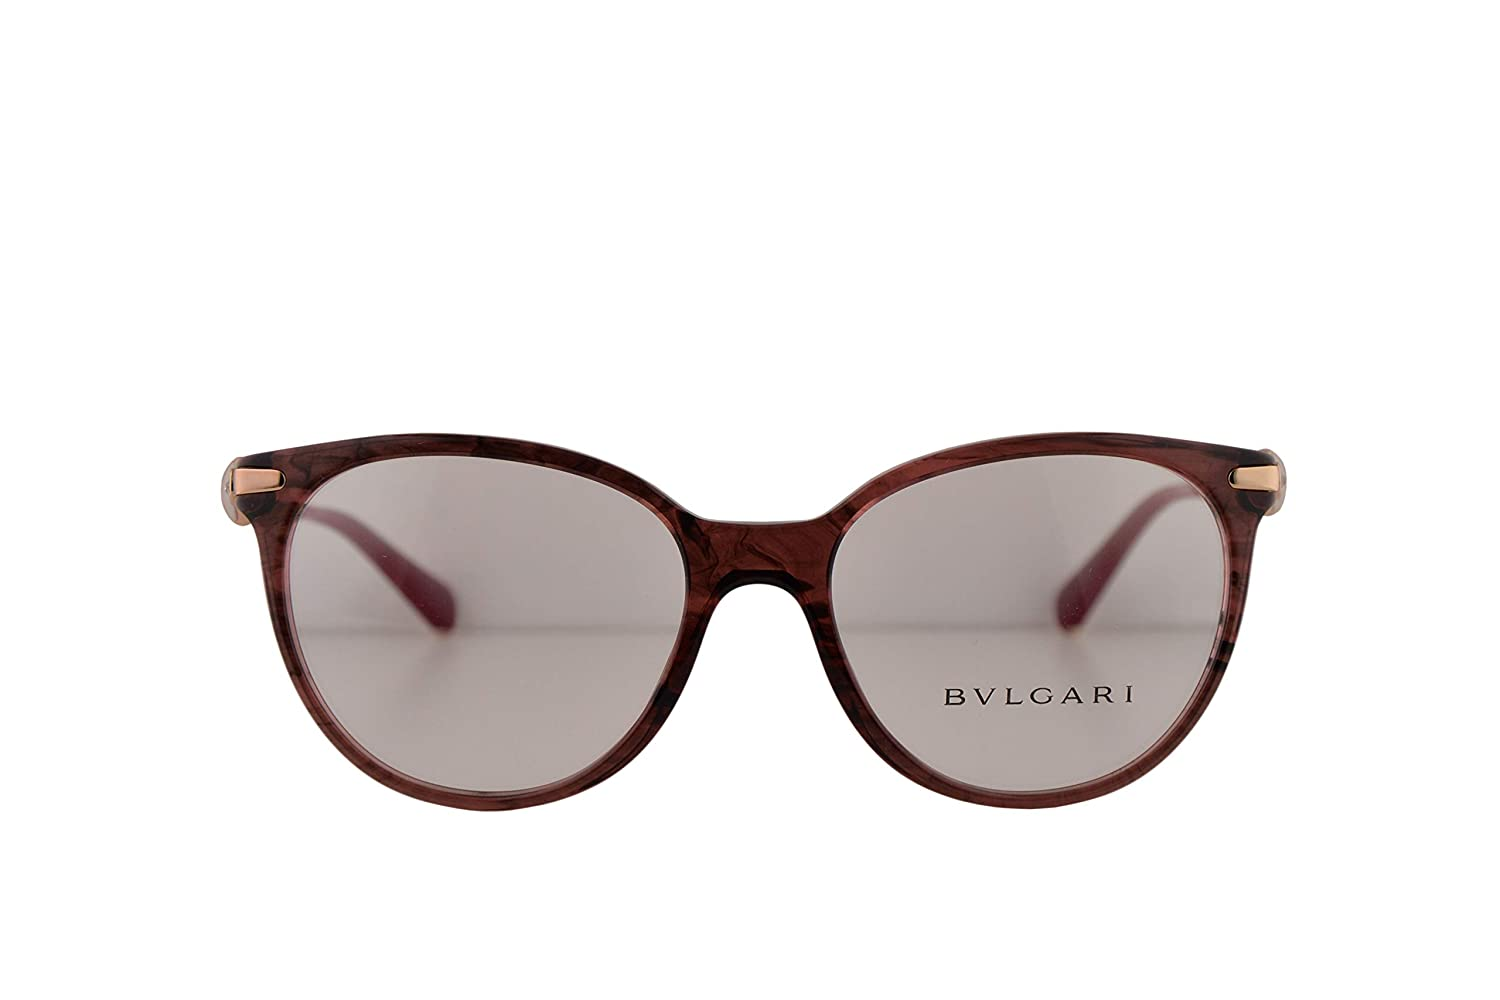 c0c7fa764bd Amazon.com  Bvlgari BV4143B Eyeglasses 53-17-135 Red Variegated Violet  w Demo Clear Lens 5397 BV 4143-B Bulgari  Clothing